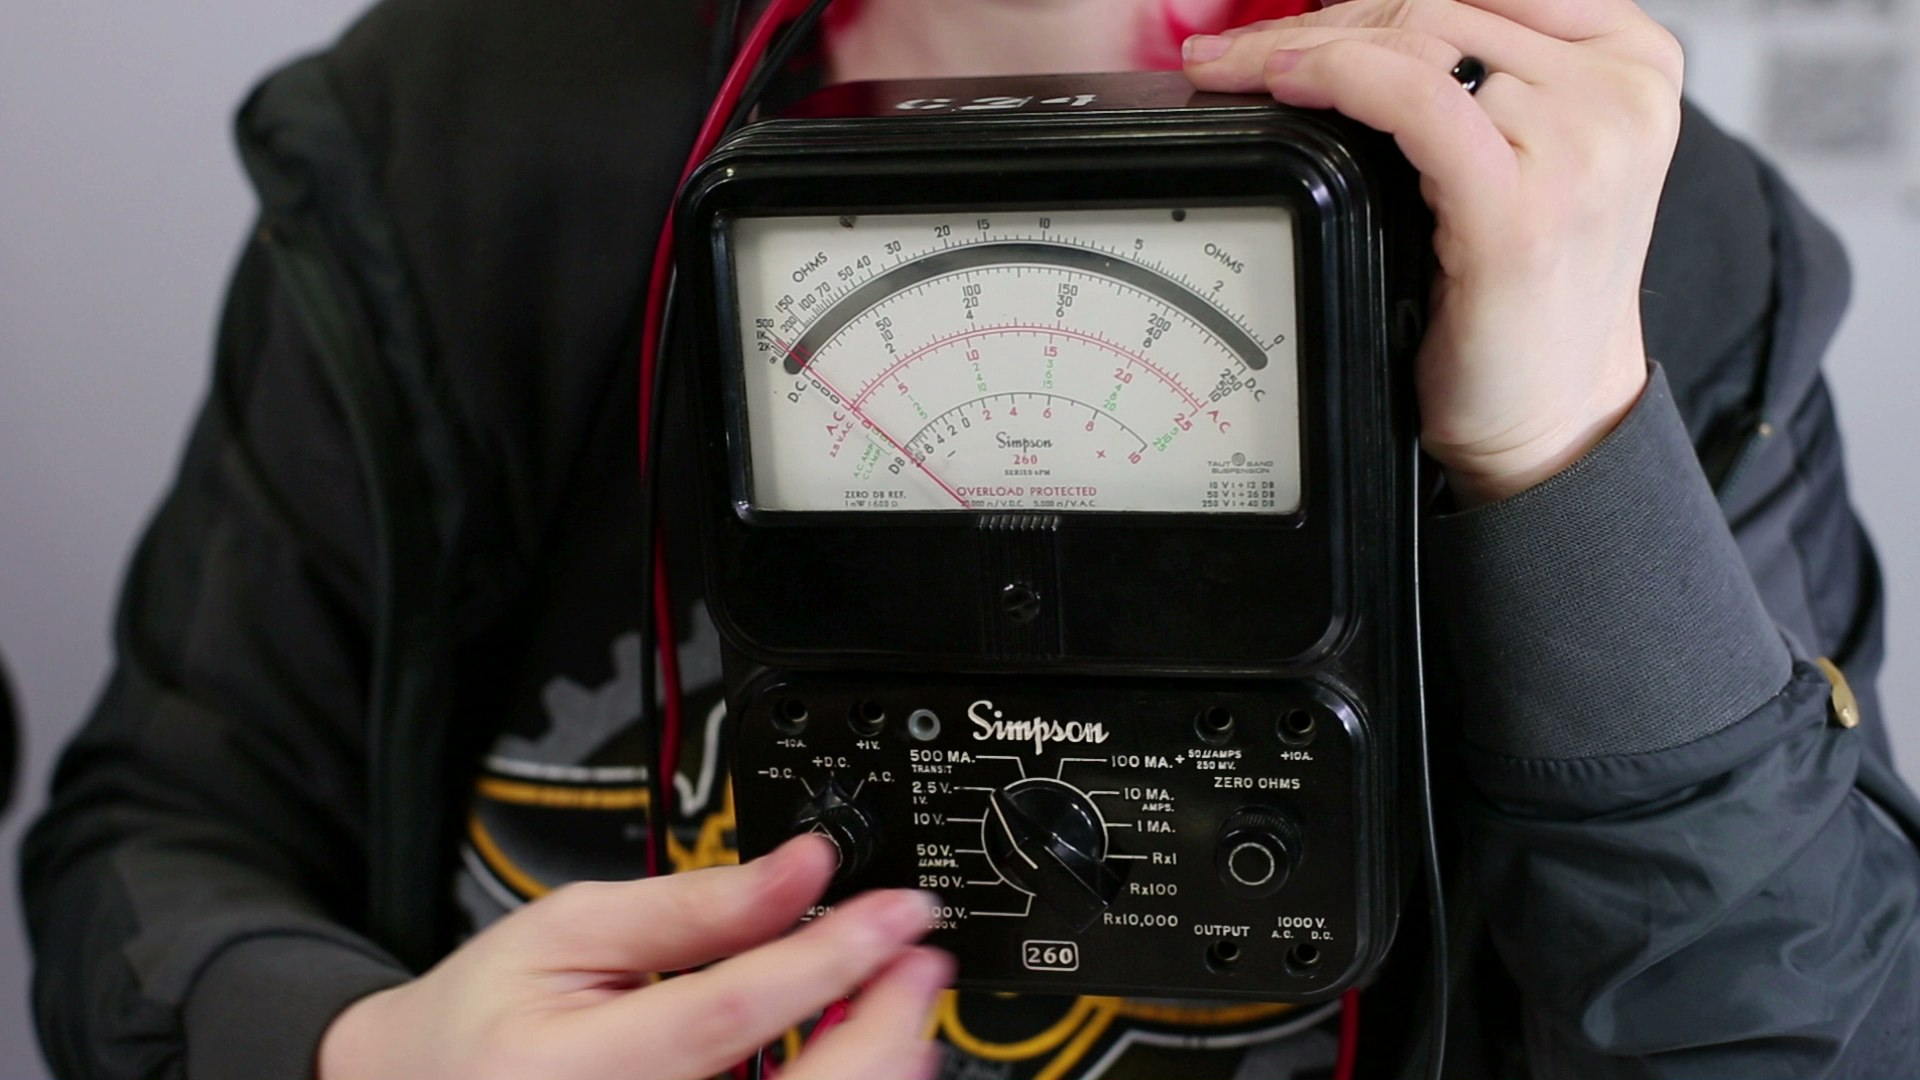 projects_Collin's_Lab_-_Multimeters-6.jpeg